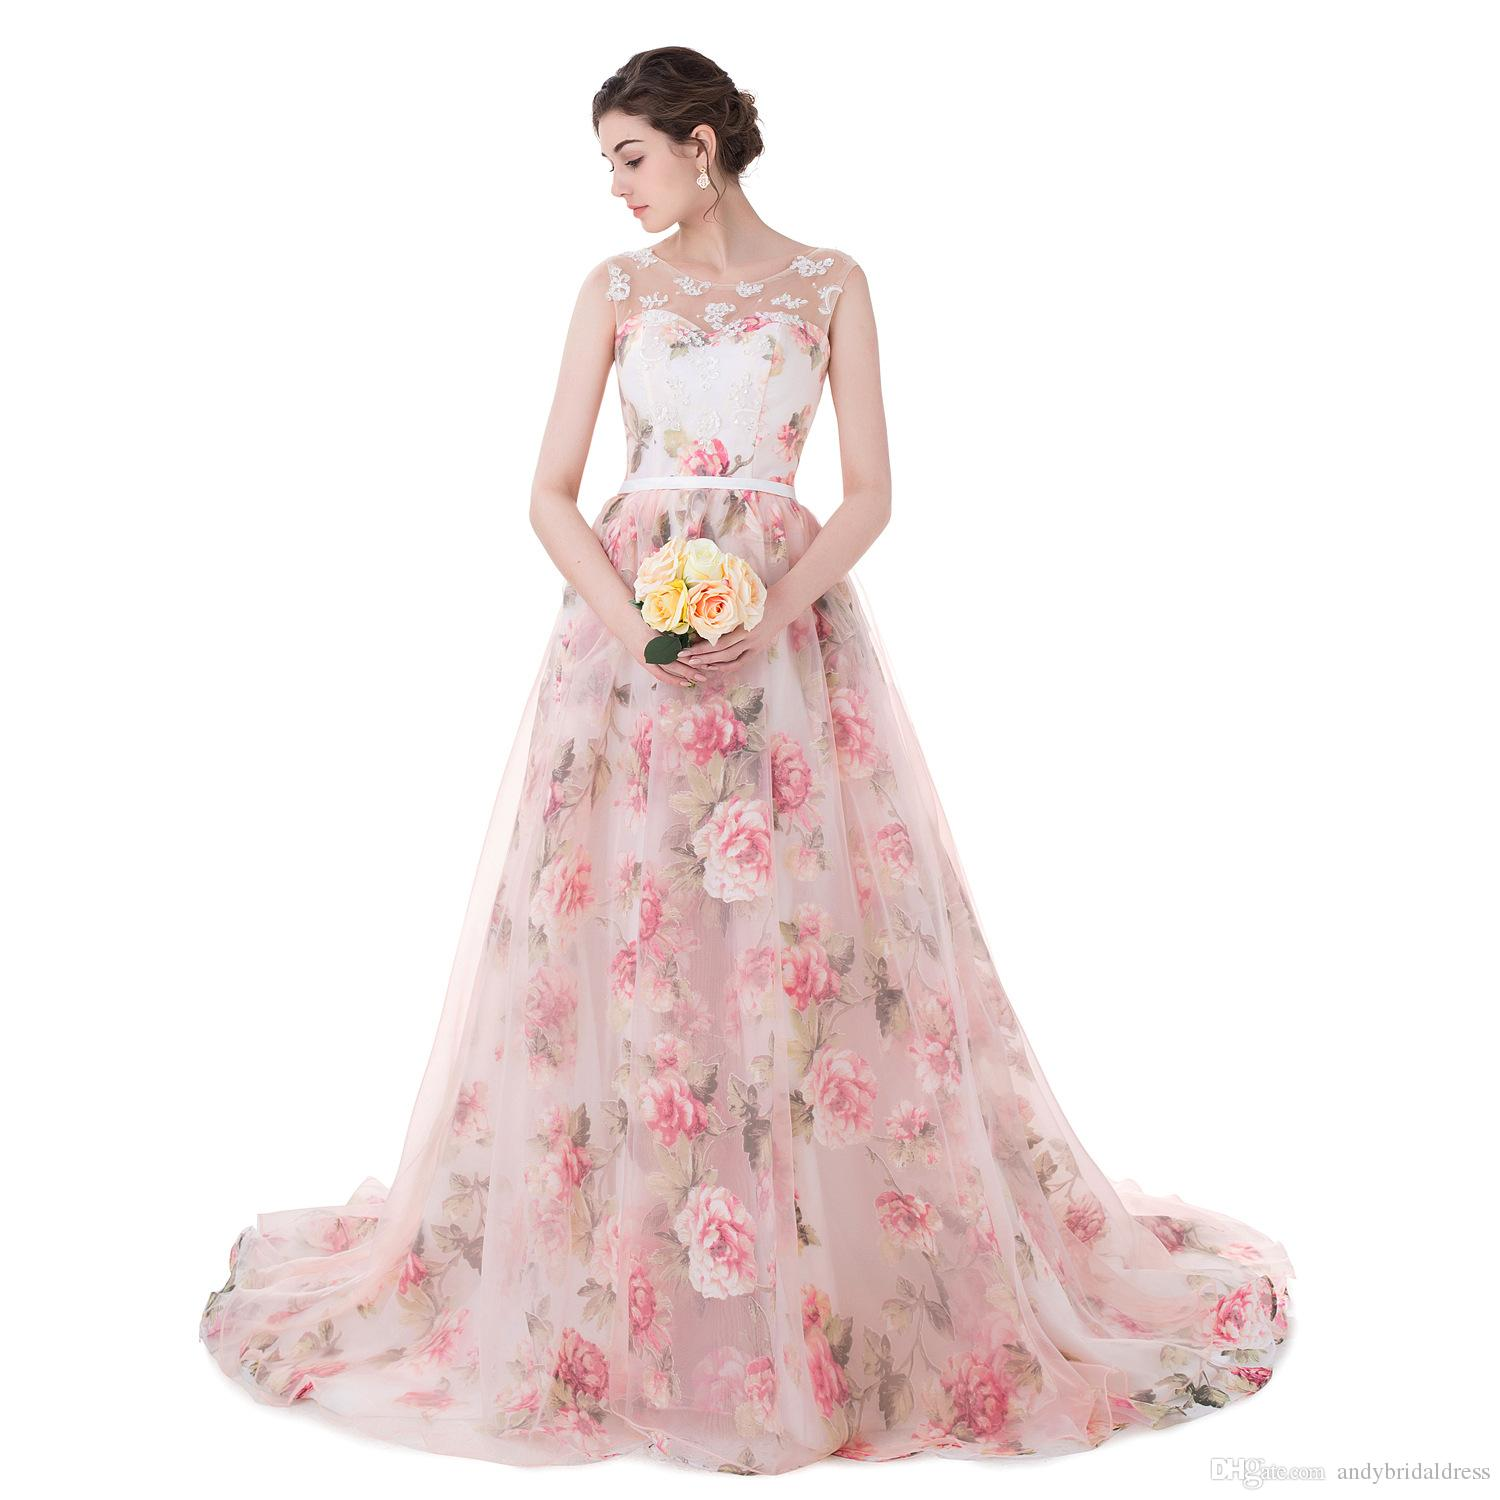 In Stock Cheap Appliques Prom Dress 2019 Print Flowers Organza Ball Gown Evening Dresses Rose Flowers Lace Formal Gowns Maxi Prom Dresses Peacock Prom Dress From Andybridaldress 104 93 Dhgate Com